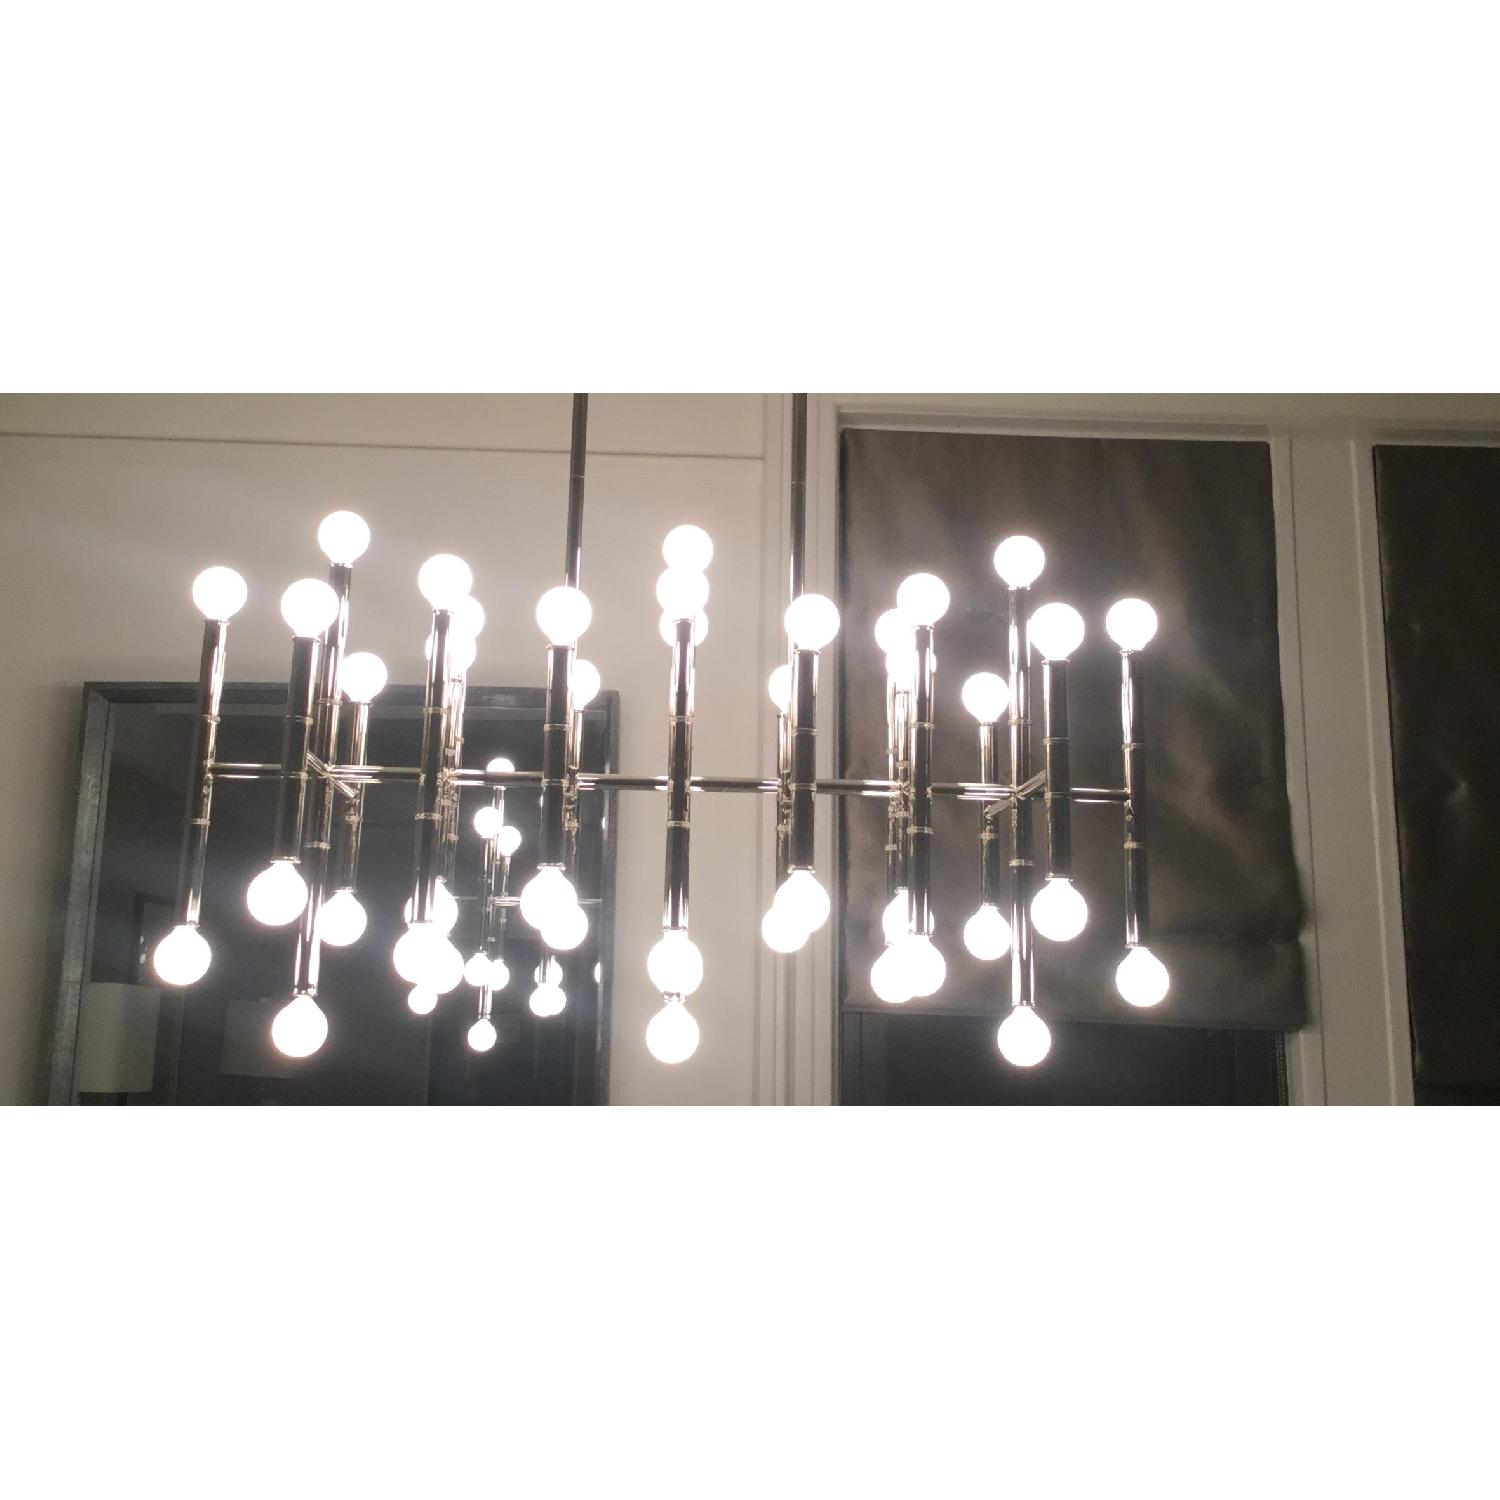 Jonathan Adler Meurice Rectangular Chandelier in Nickel AptDeco